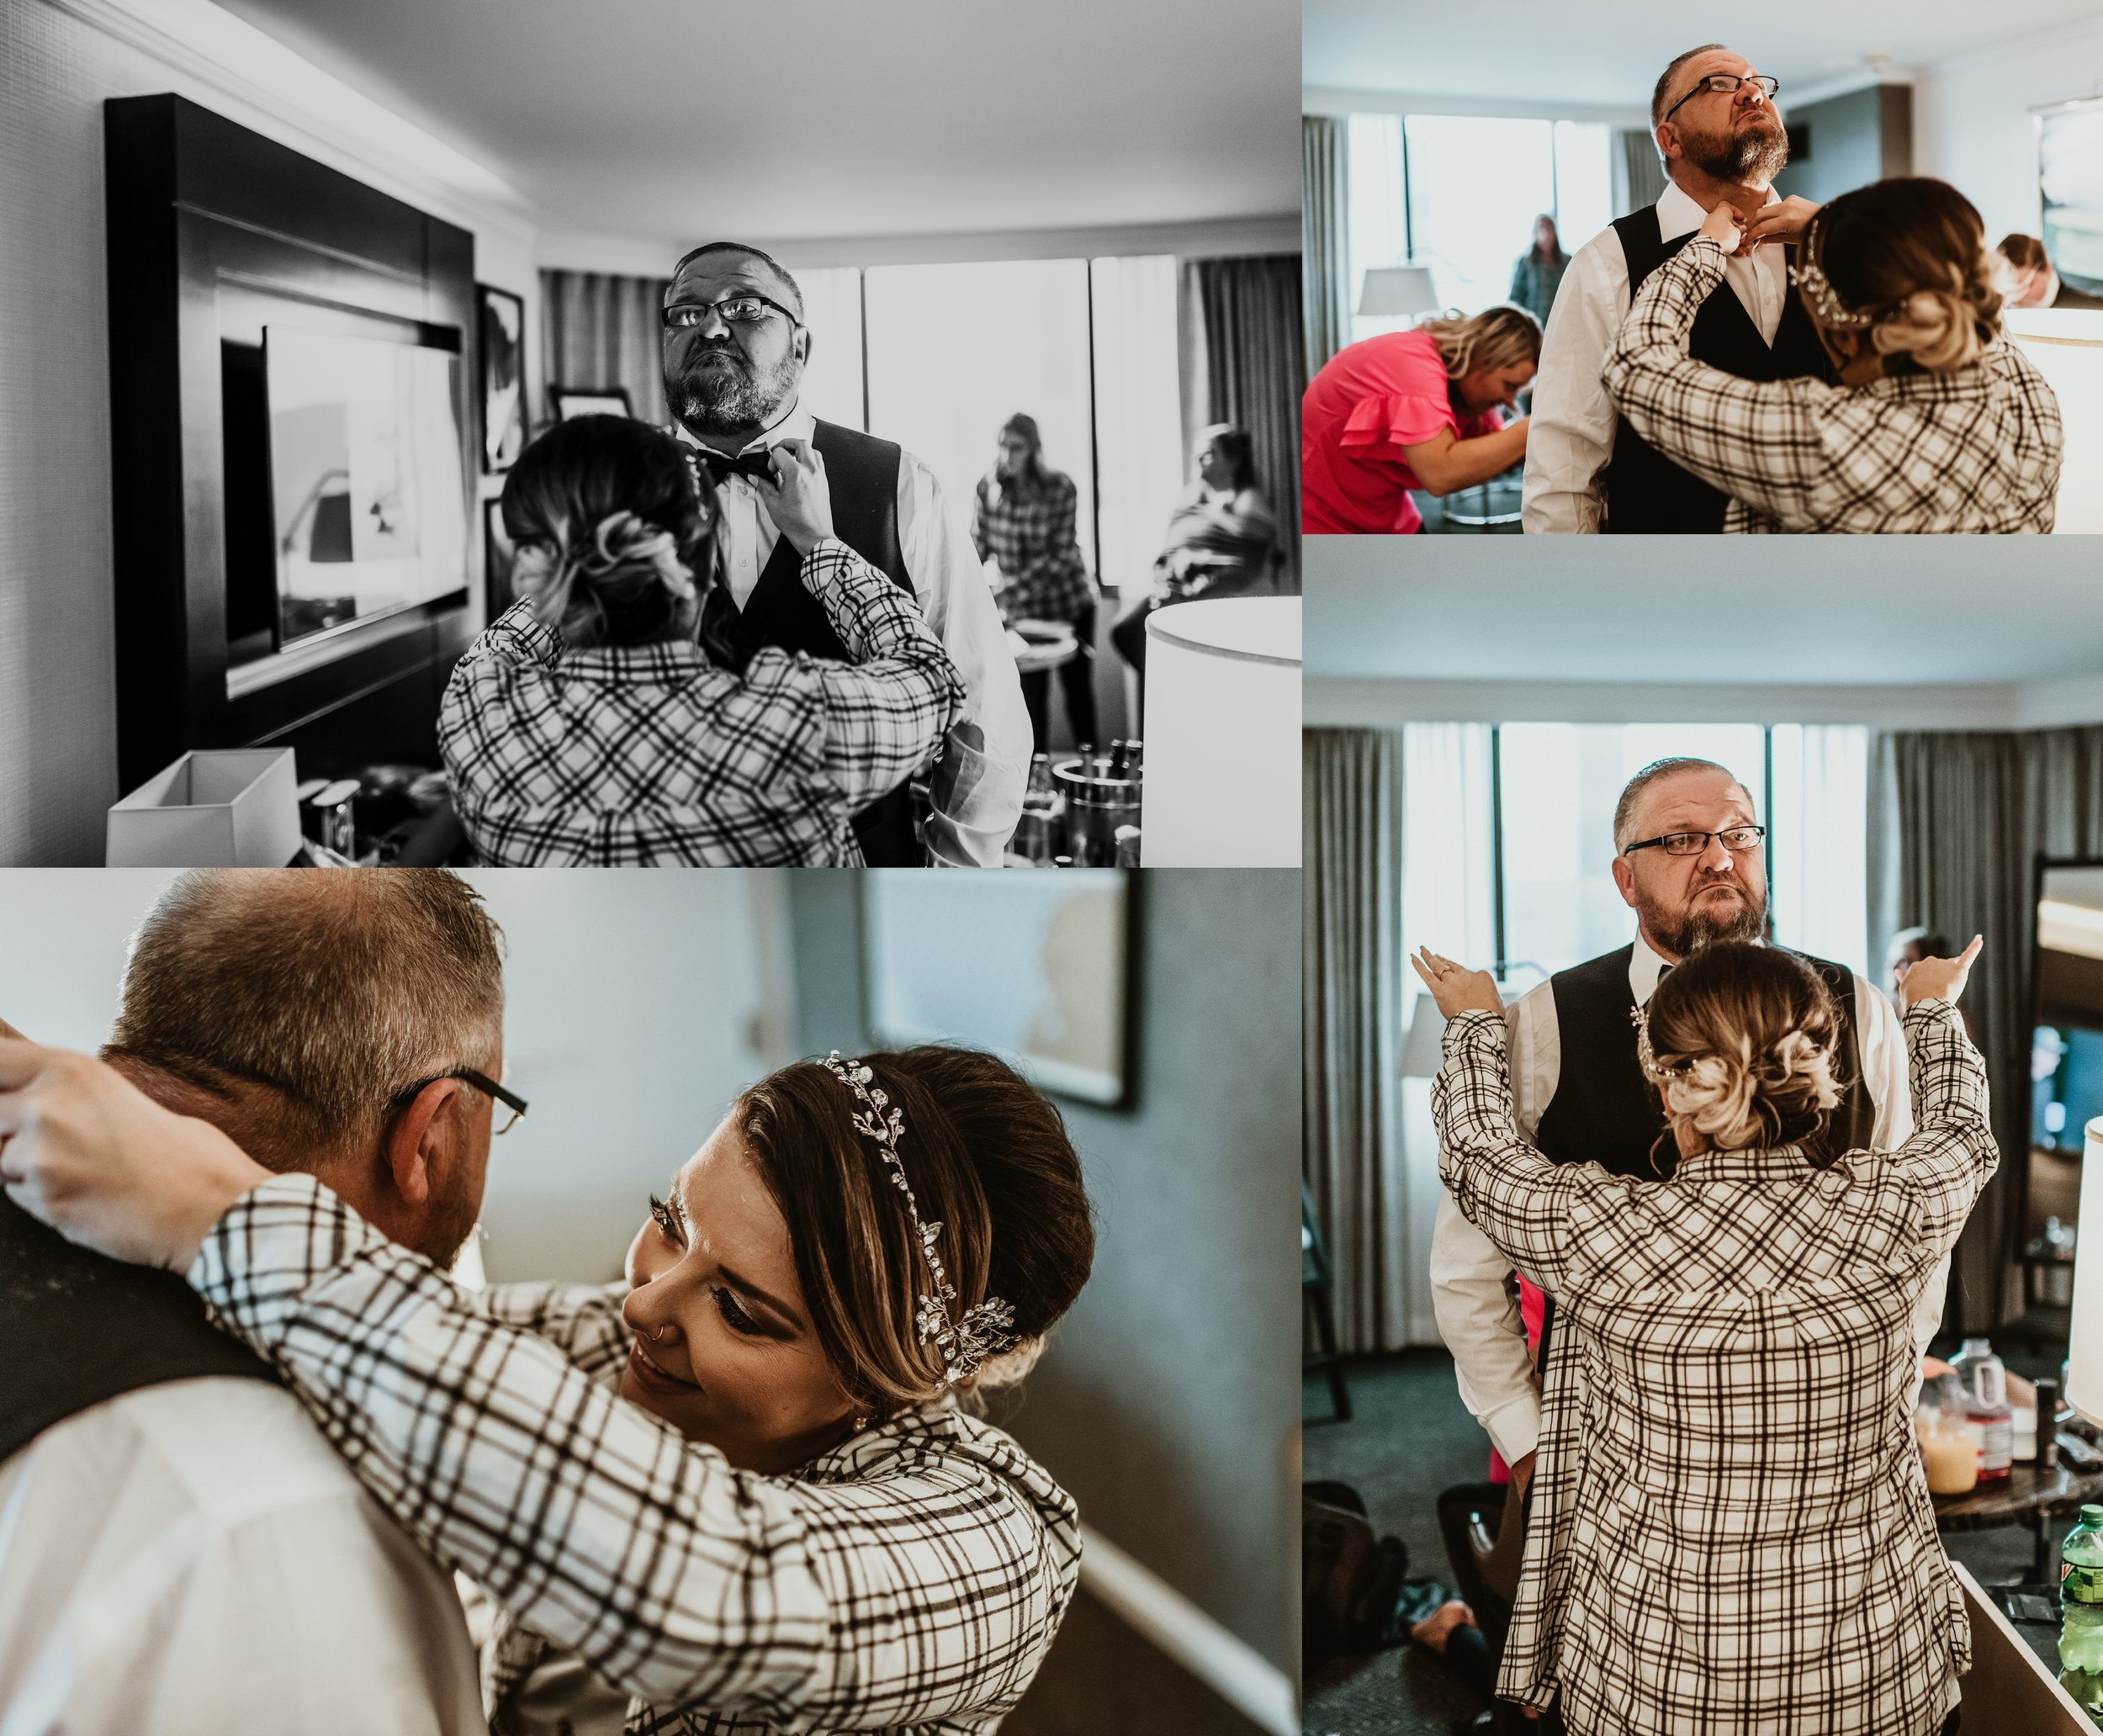 Classic Vintage Wedding | Ritz Carlton Atlanta, Georgia | Terry Farms Photography | Getting Ready Photo | Father Daughter Wedding Day